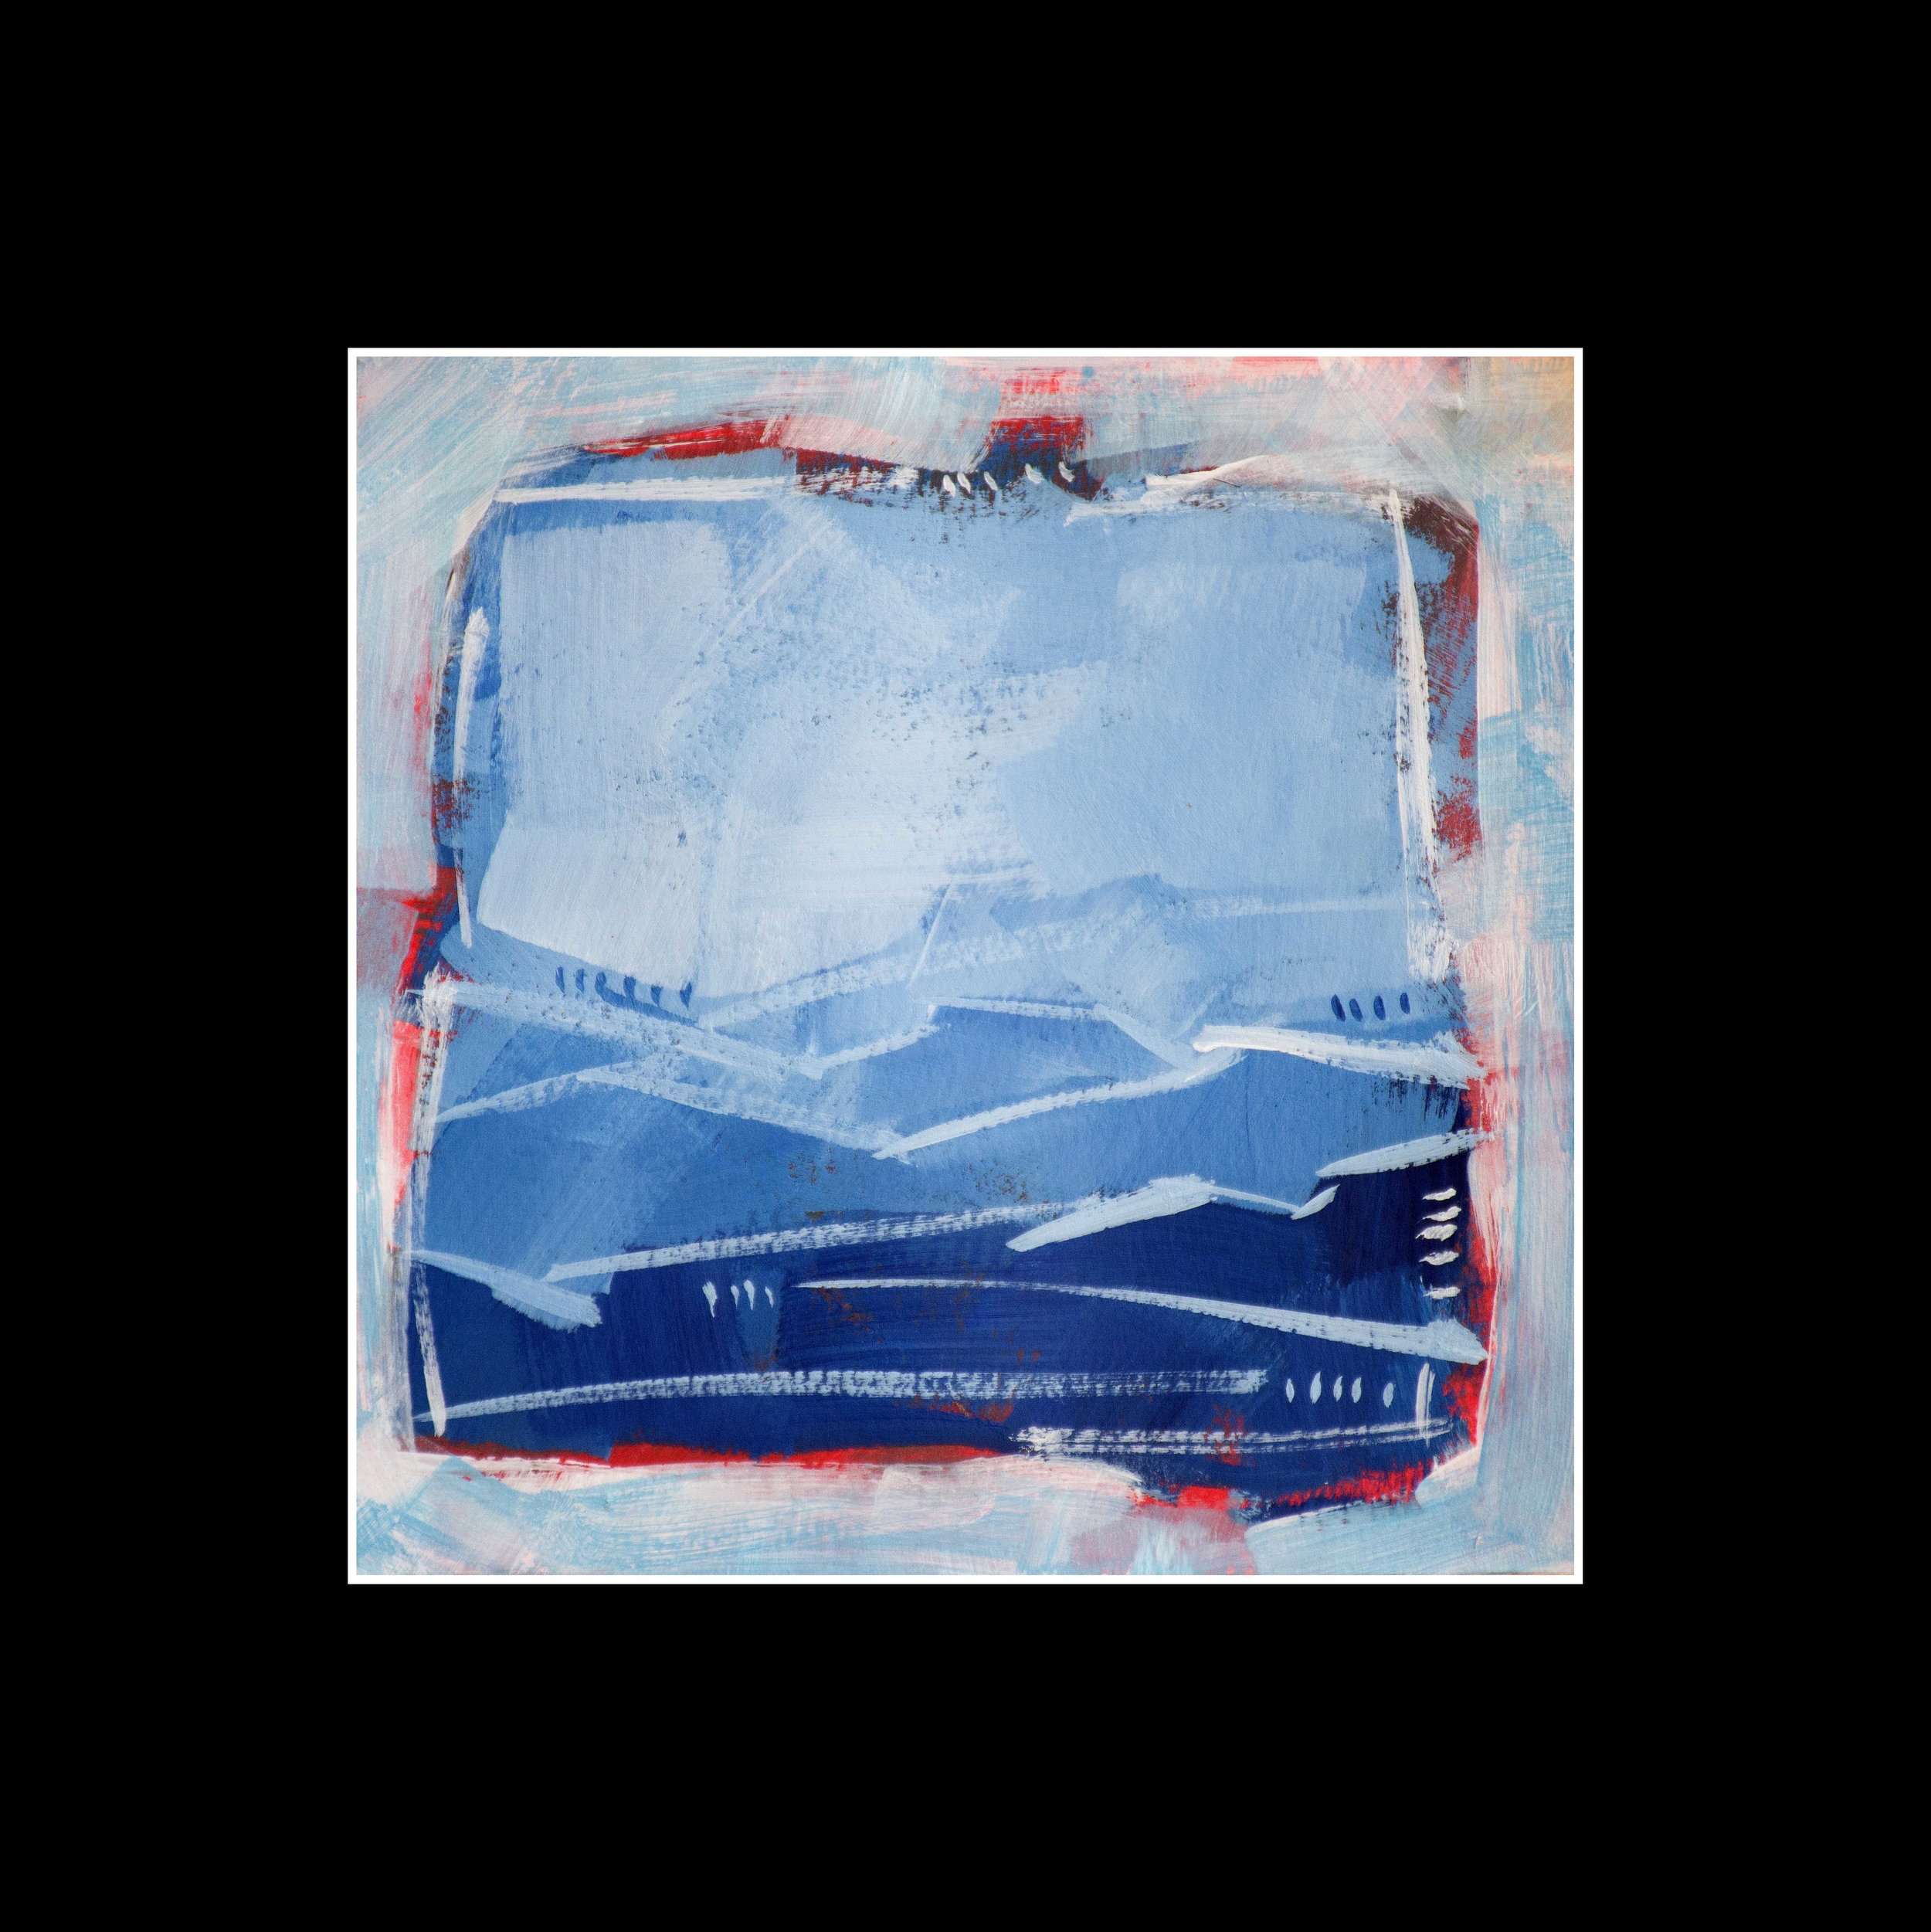 RWS003_Landscape in blue #3_SF_BlackMatte.jpg